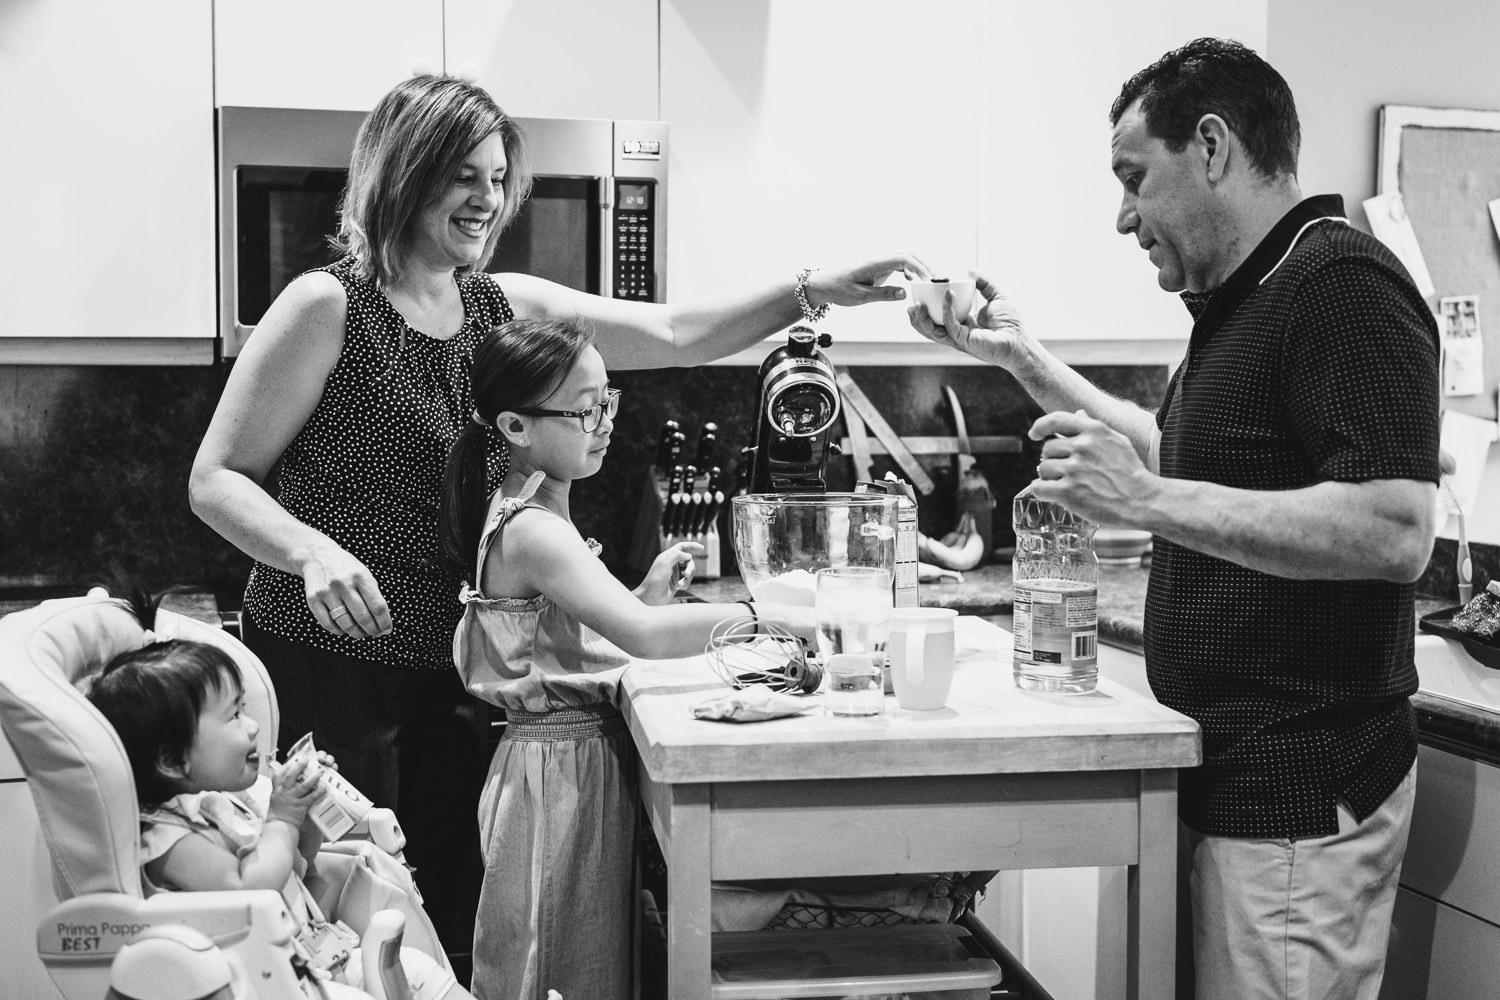 A family bakes a cake in their kitchen.